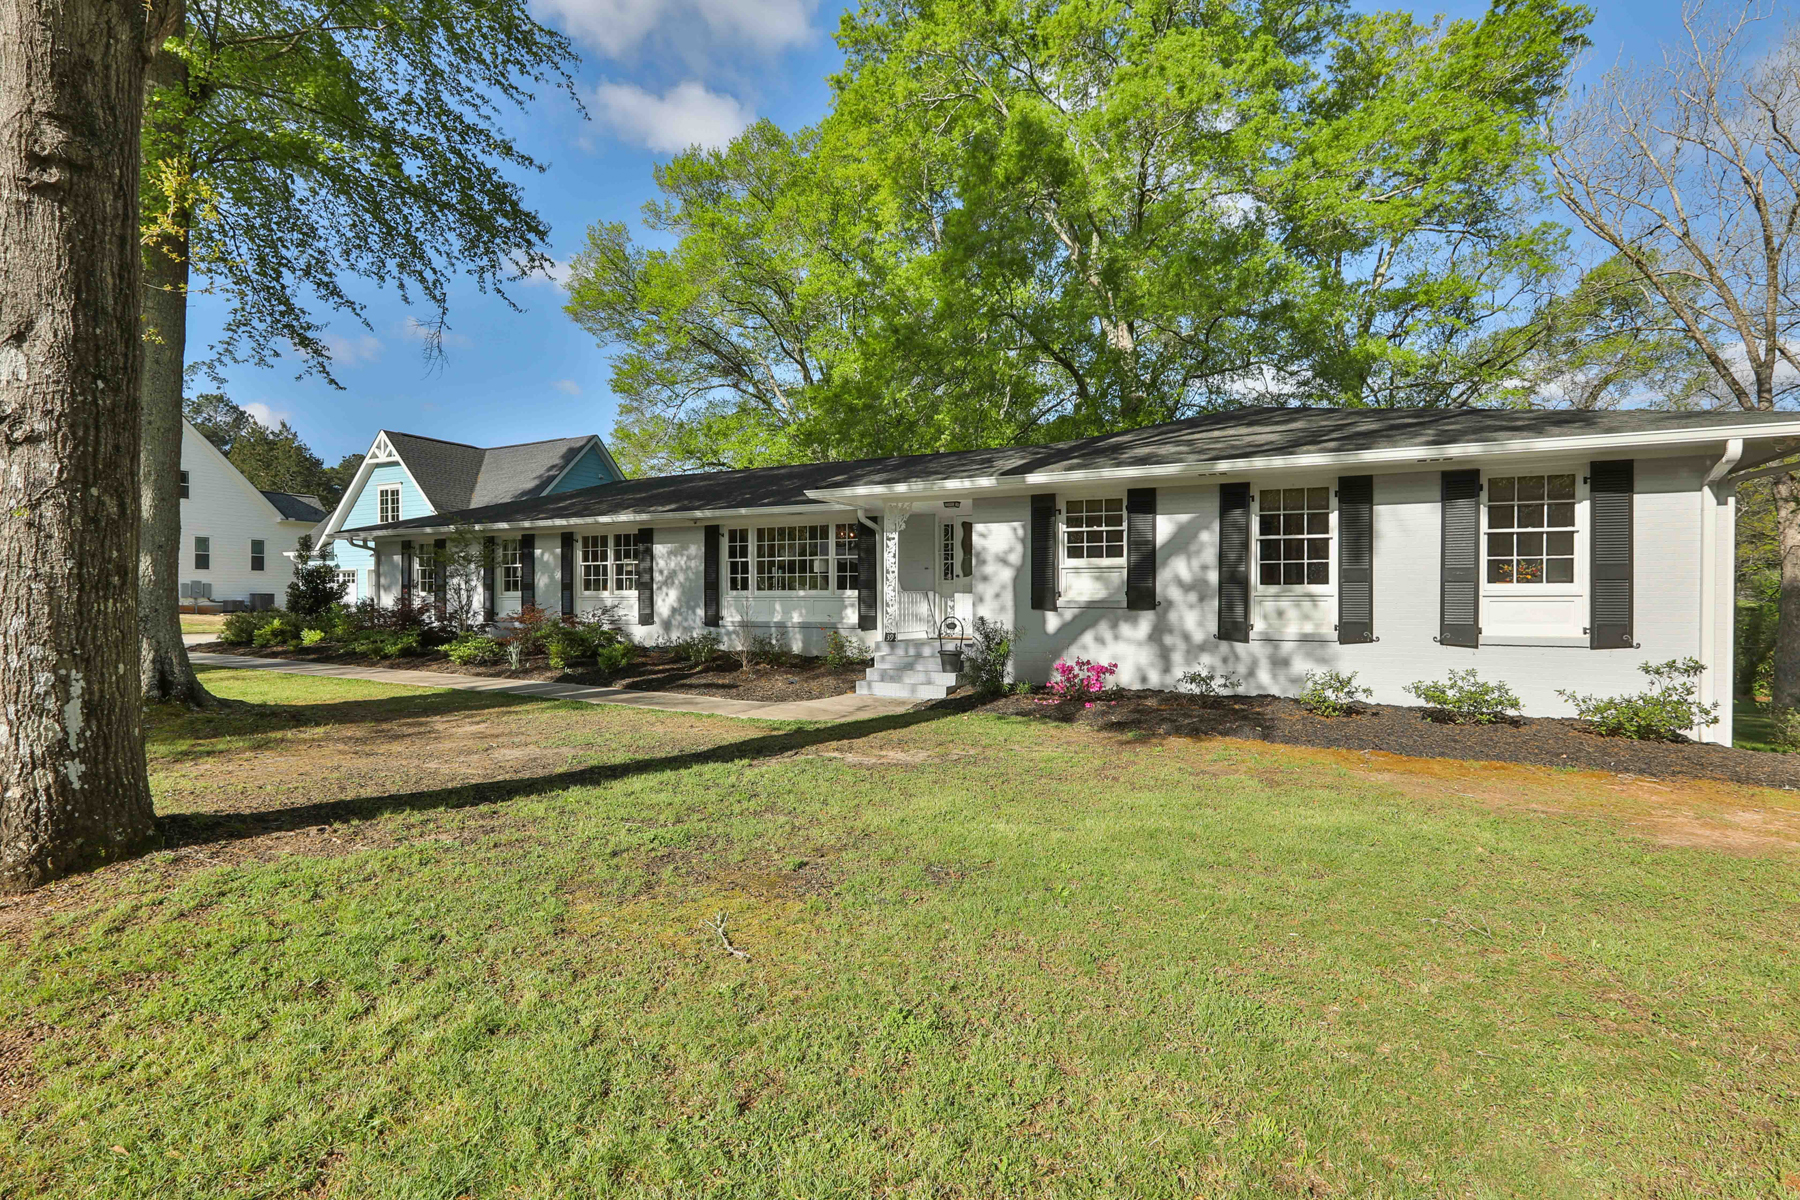 Single Family Homes のために 売買 アット Fully Renovated Four Bedroom Mid-Century Ranch 39 Luther Bailey Road, Senoia, ジョージア 30276 アメリカ